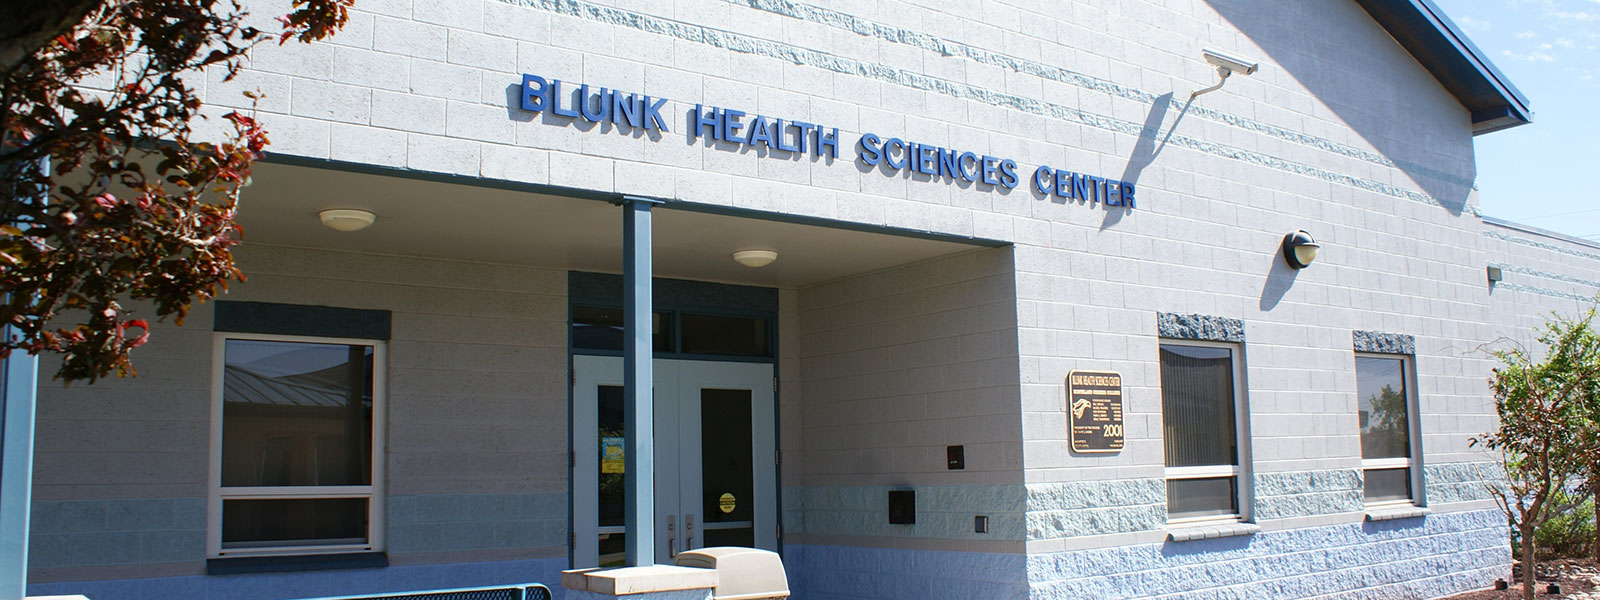 The Blunk Science Center on the Winslow Campus